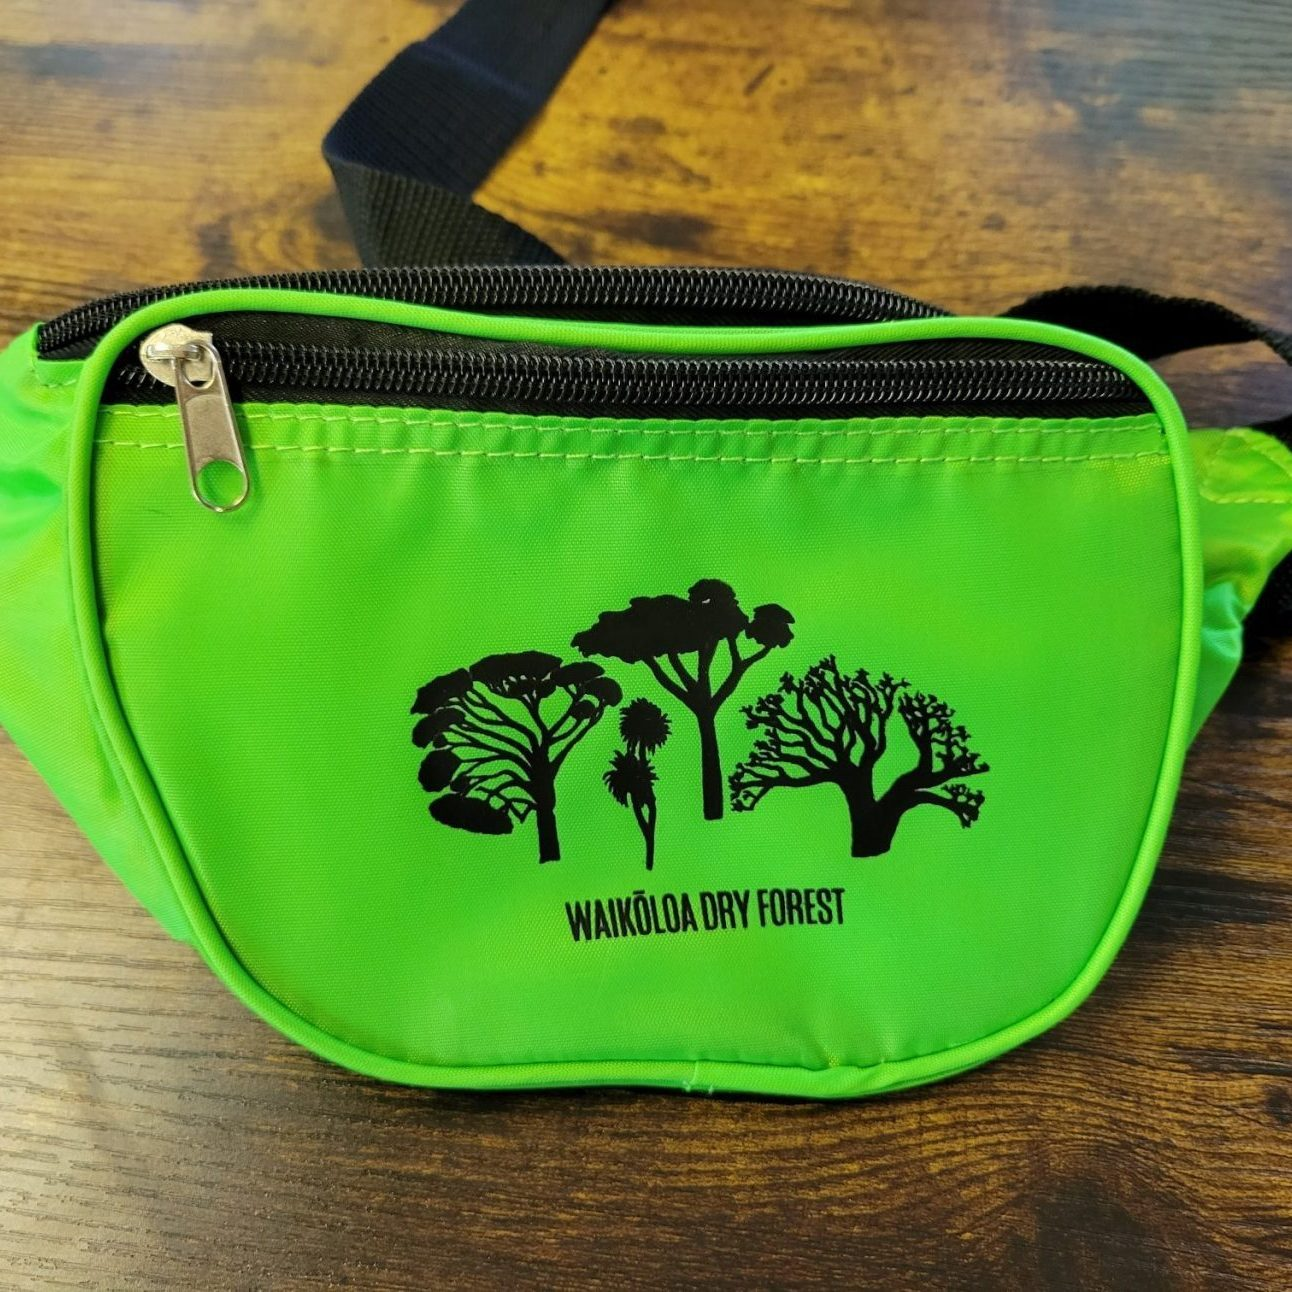 Waikōloa Dry Forest Fanny Pack